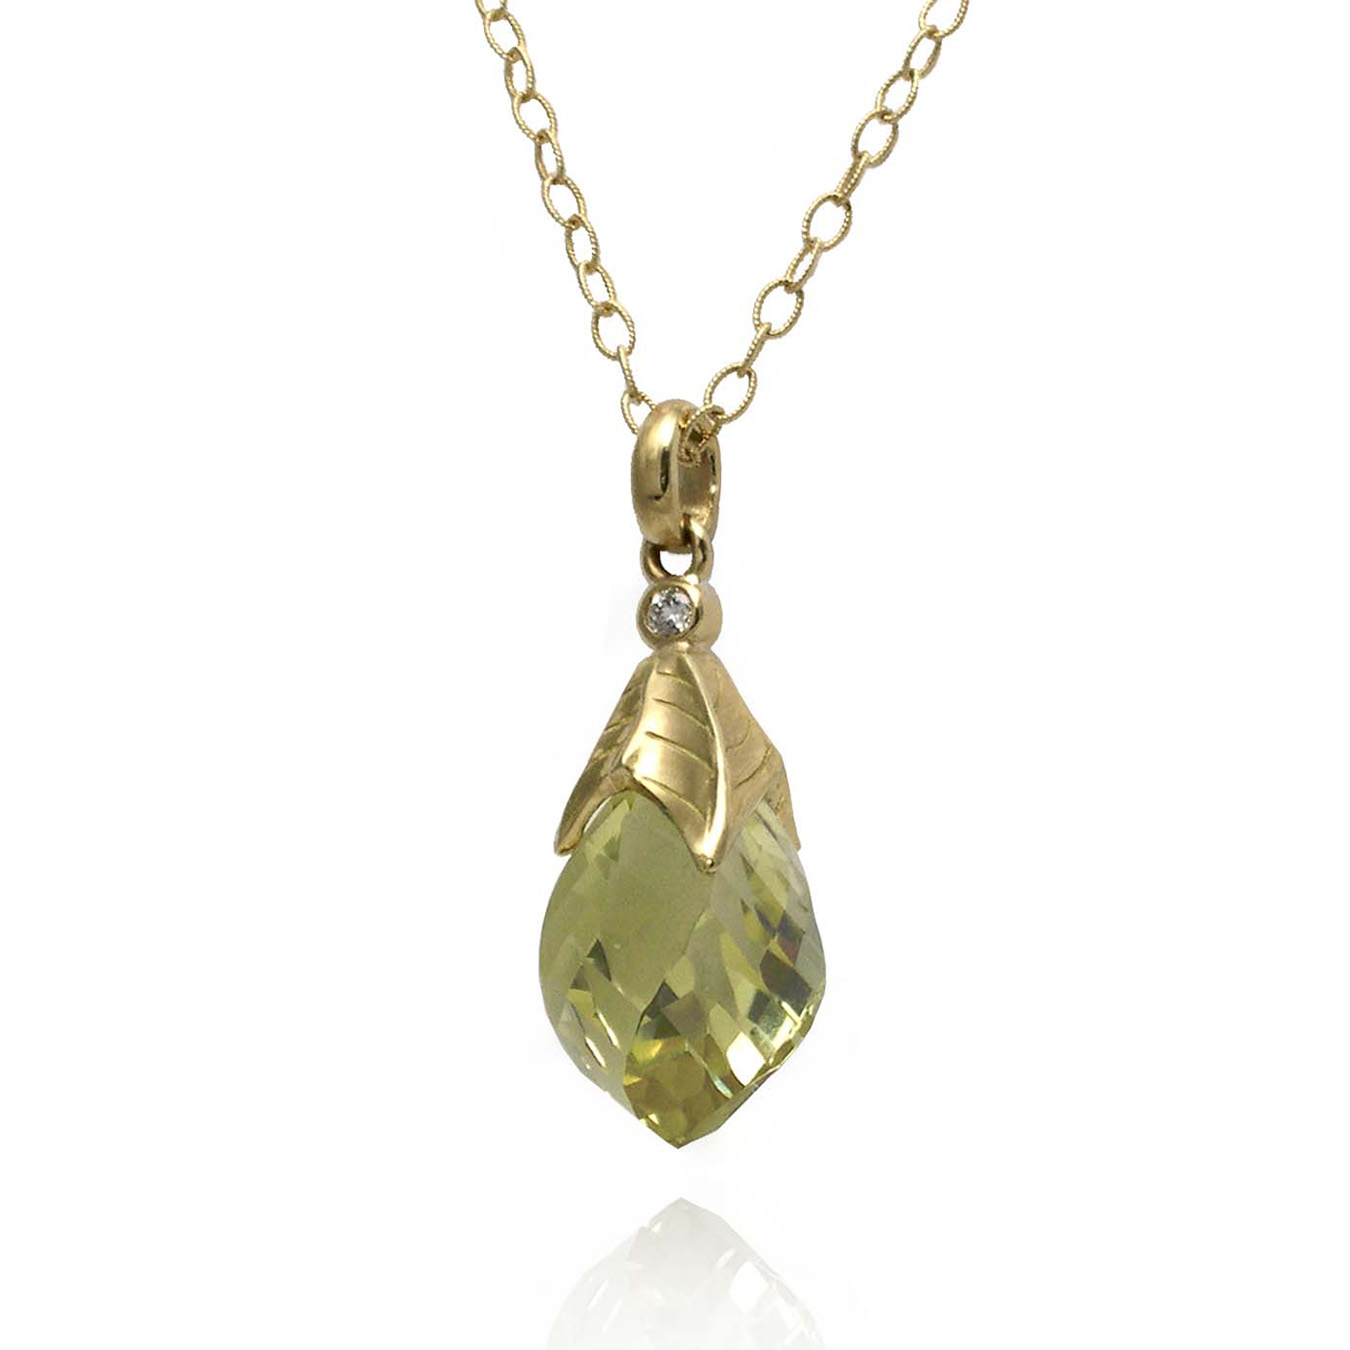 Lemon Quartz Necklace by K.Mita